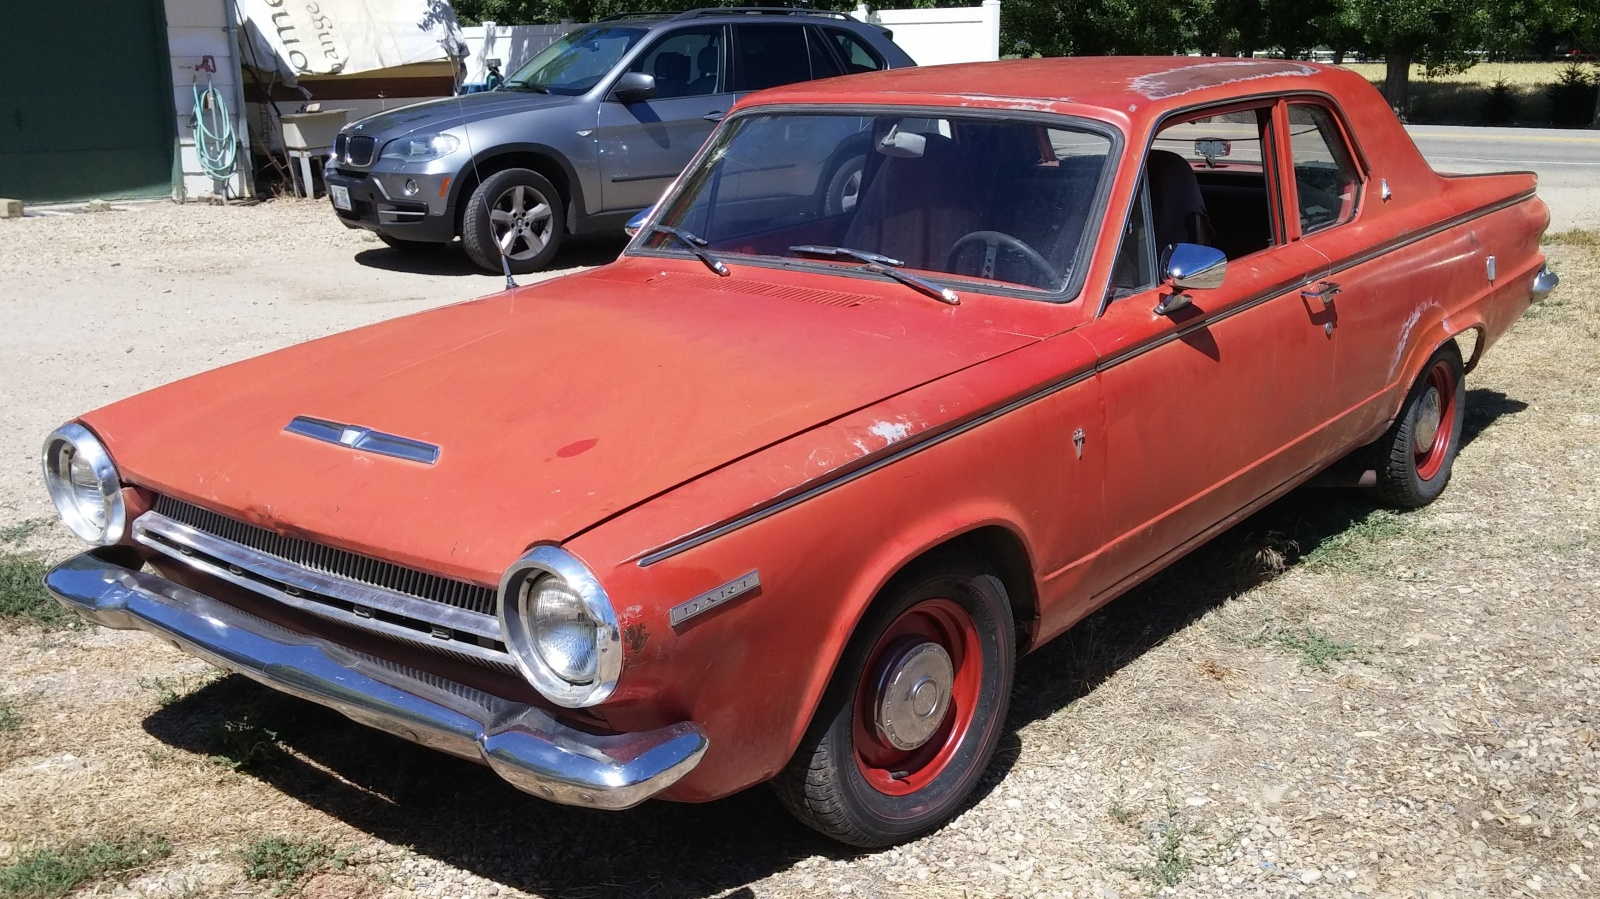 Craigslist Dodge Dart Parts Autos Post